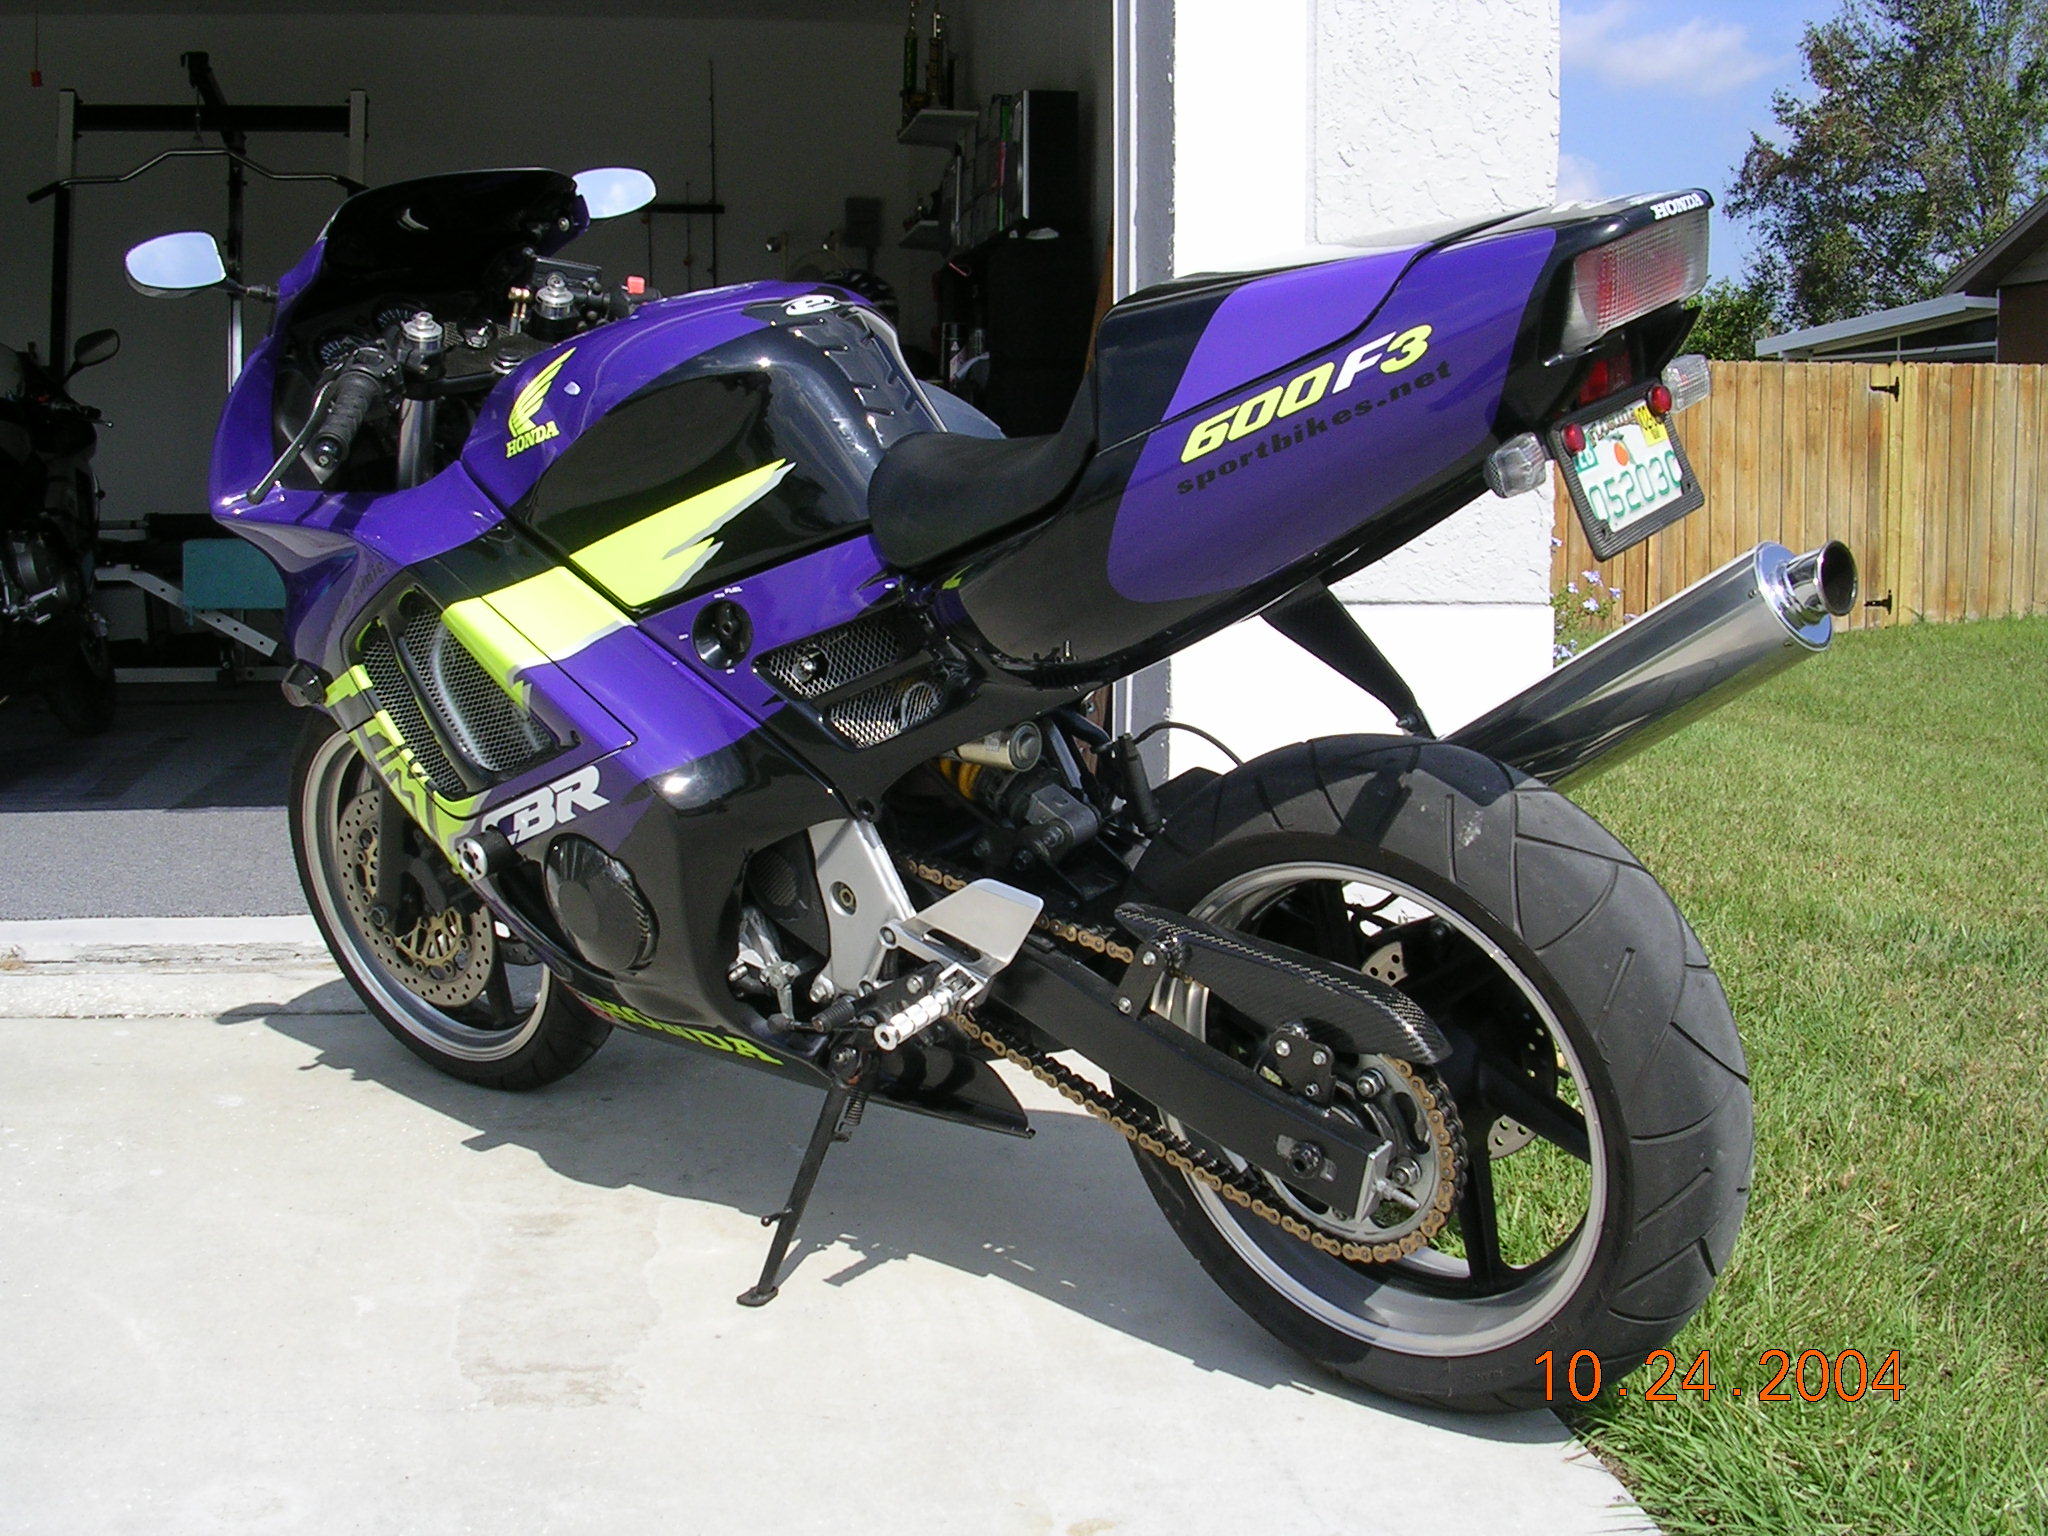 2002 cbr600f4i wiring diagram Images Gallery